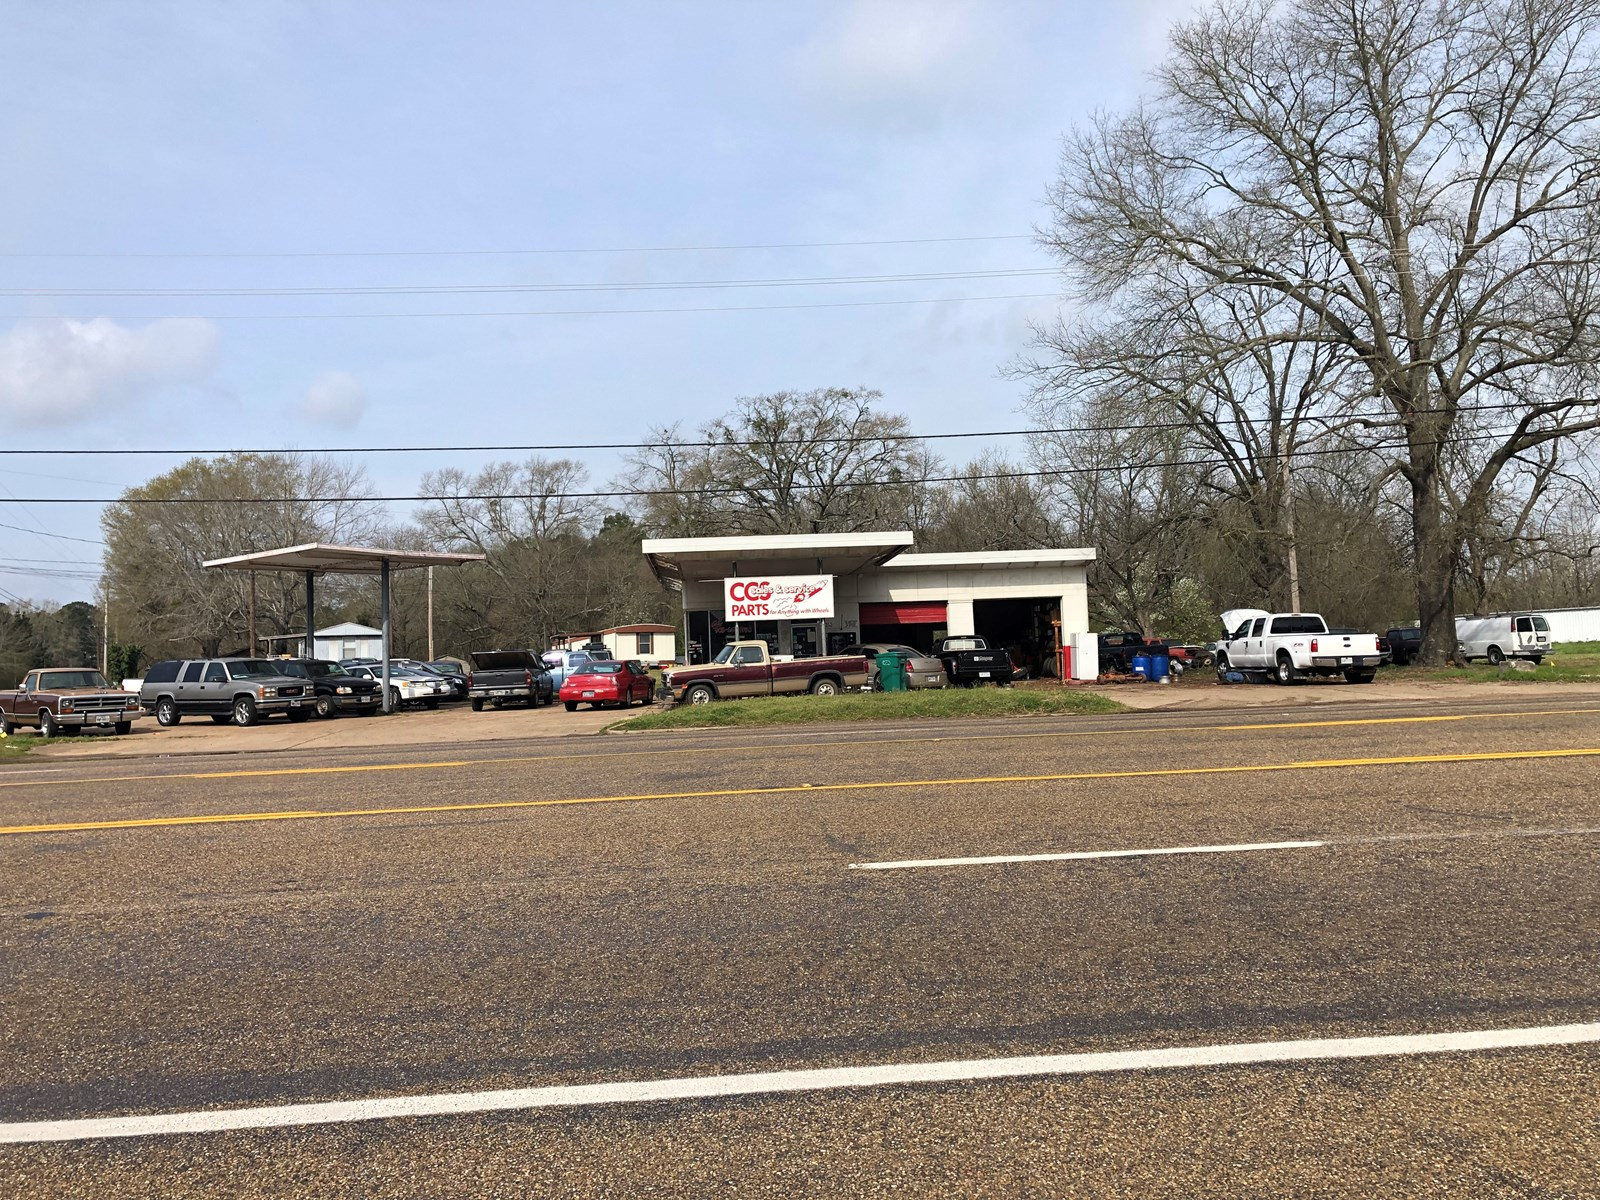 Commercial Property for Sale Hwy 59 Atlanta, Texas